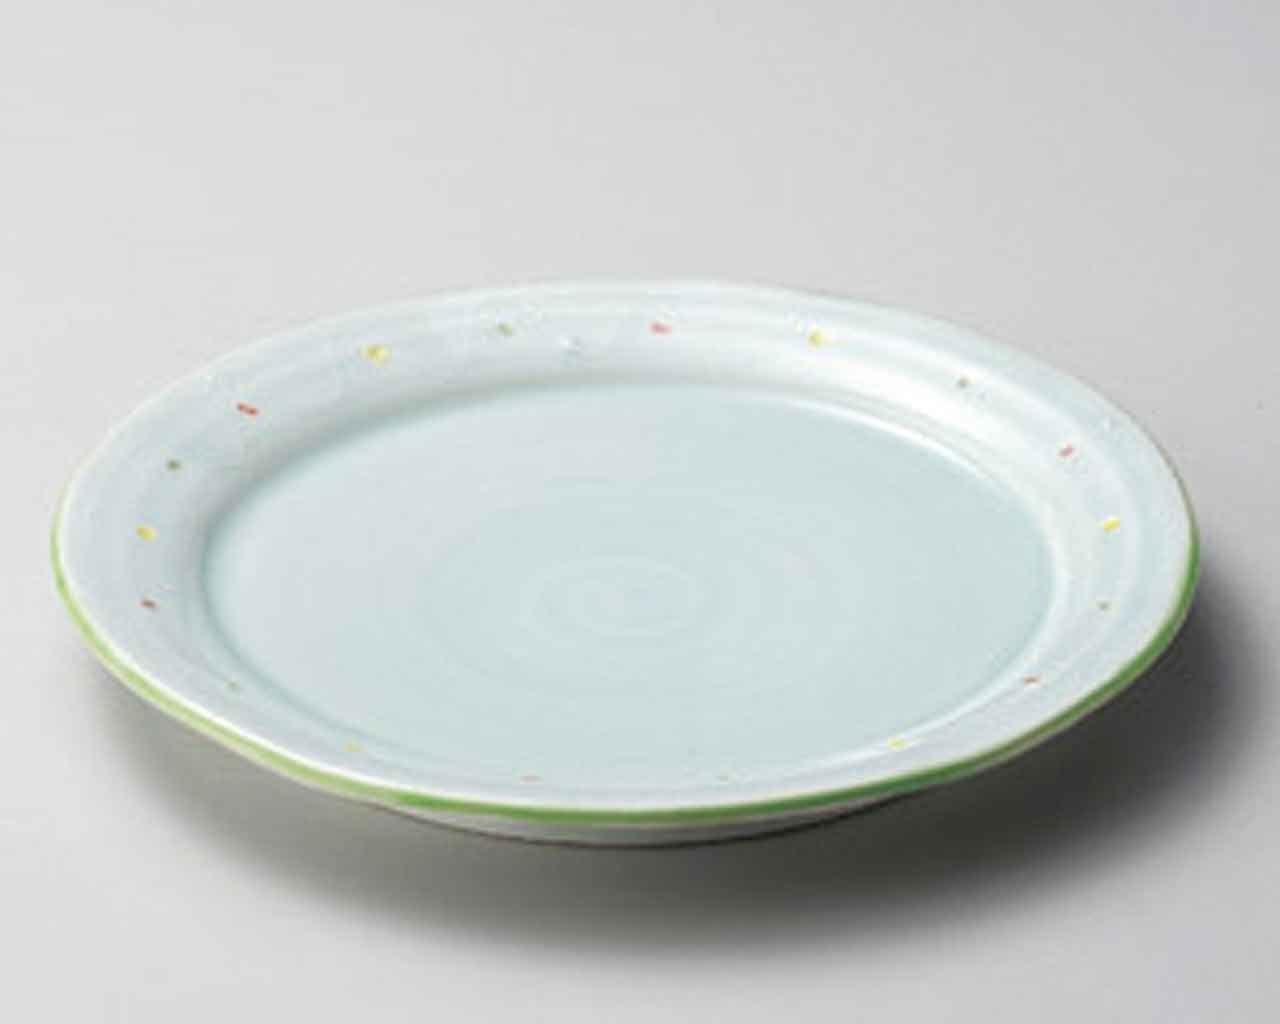 Water Blue 10.8inch Set of Our shop OFFers the best service 5 Made PLATES i Green porcelain SUSHI Colorado Springs Mall